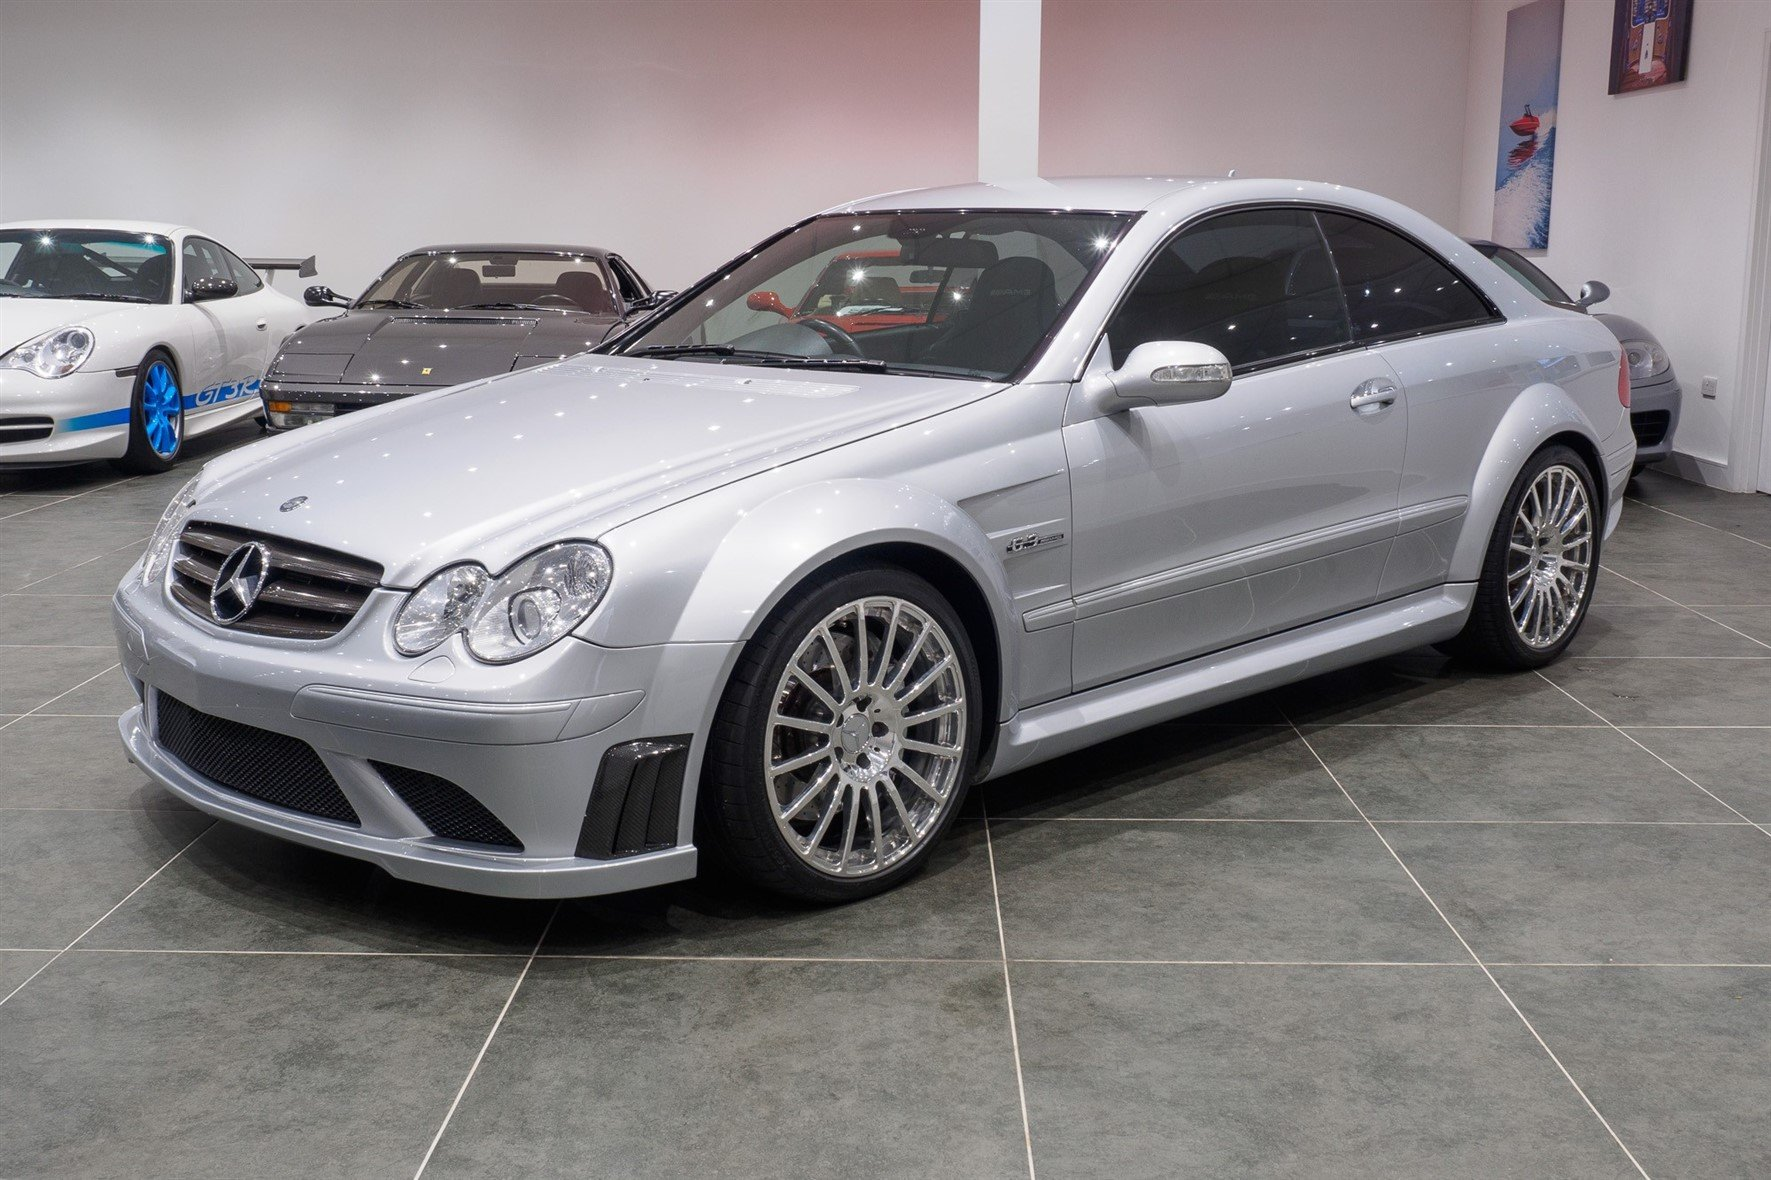 2008 Mercedes CLK63 AMG Black Series / 1 of 120 Worldwide For Sale (picture 3 of 6)